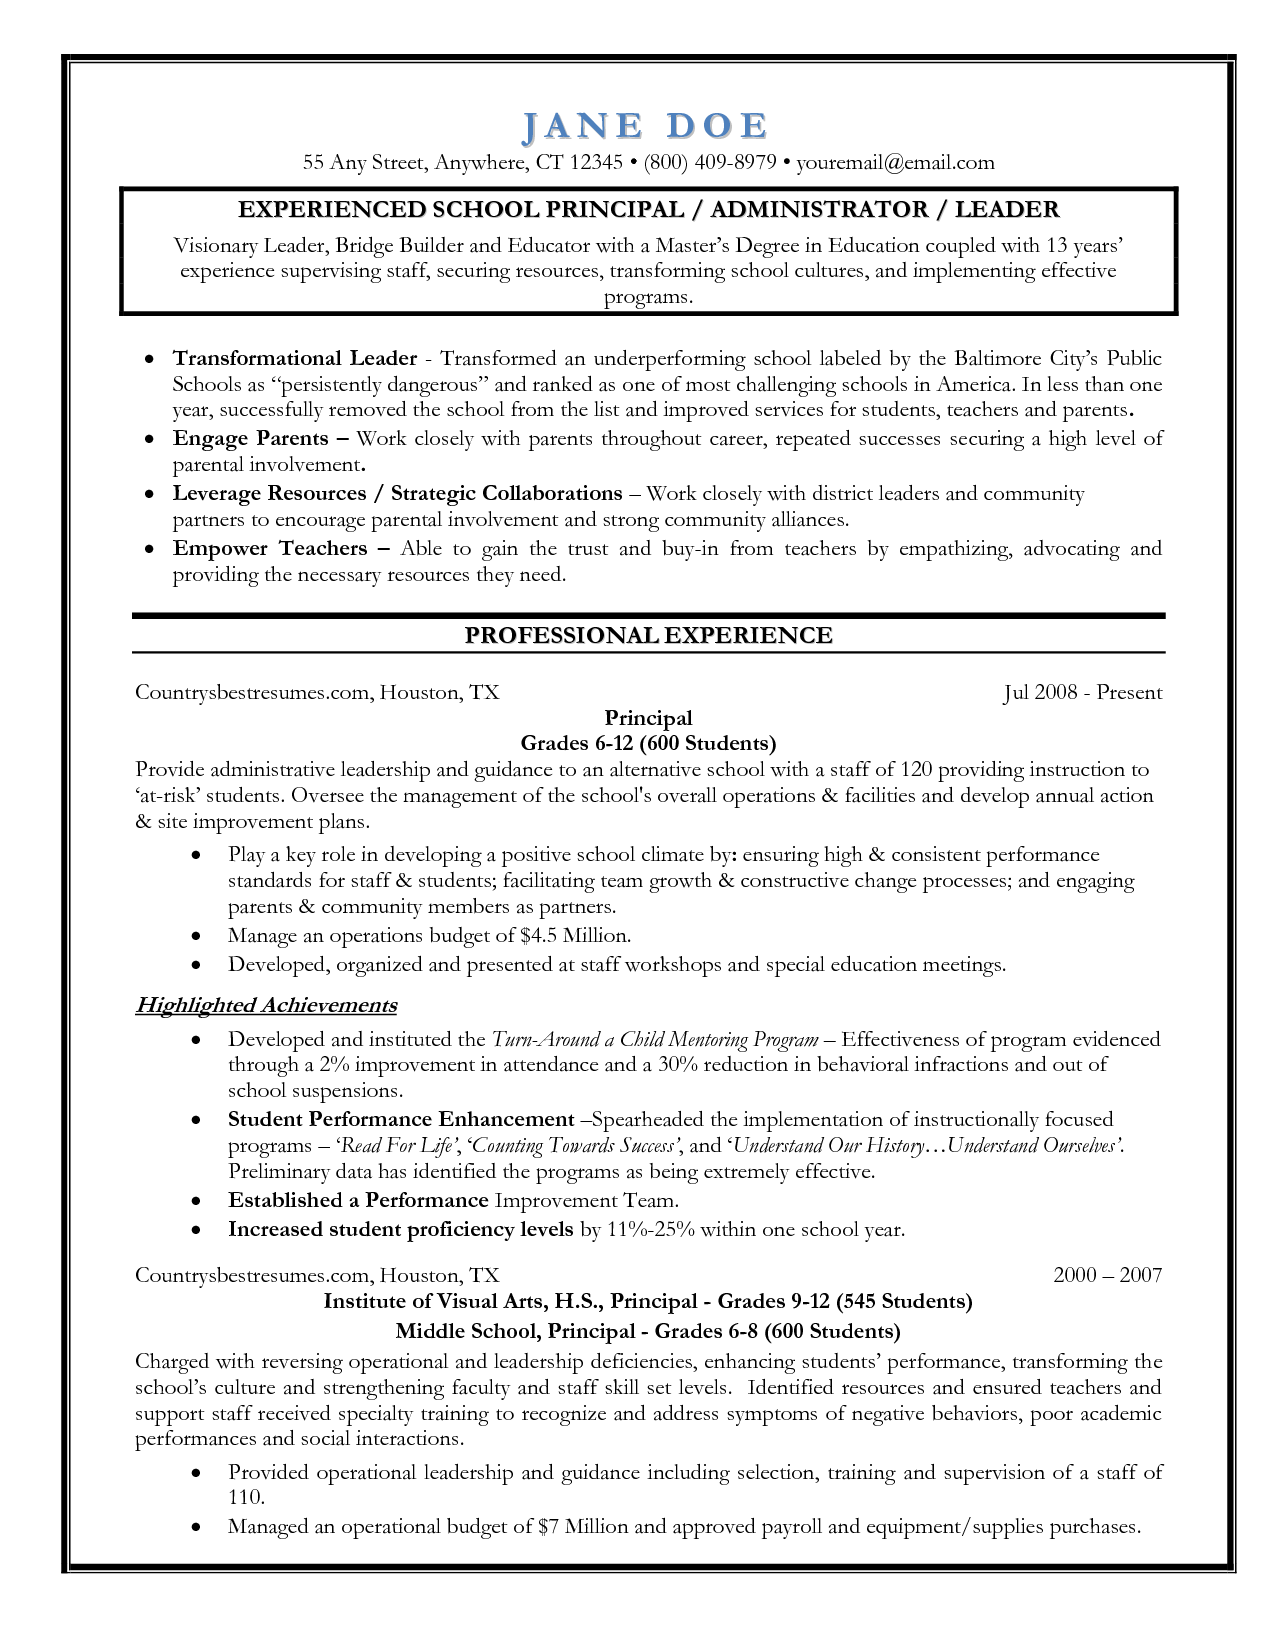 2017 Resume Examples Entrylevel Assistant Principal Resume Templates  Senior Educator